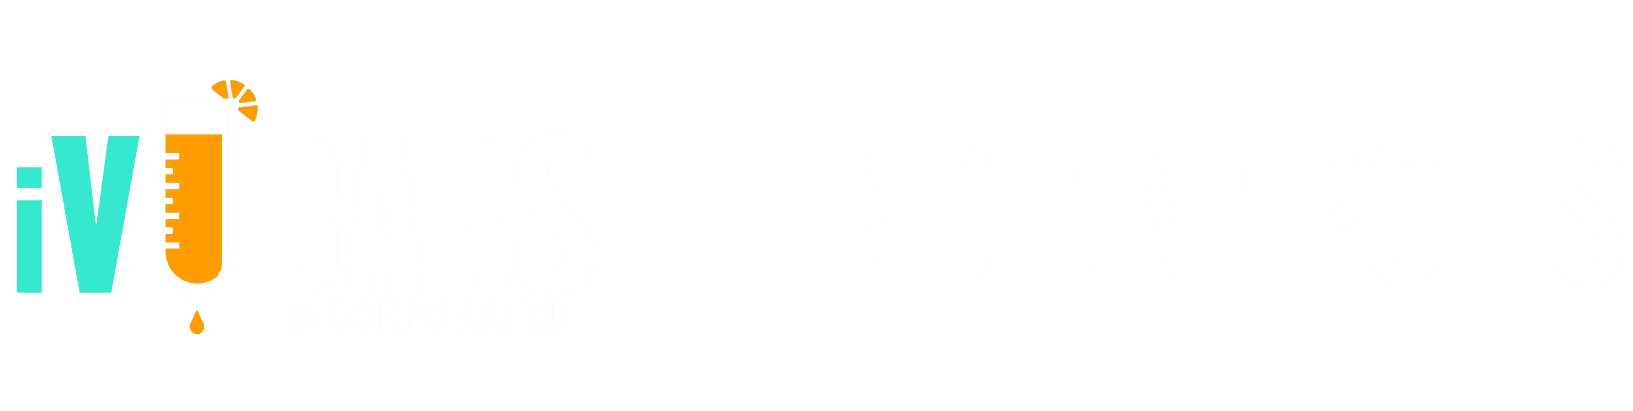 logo of iV bars Indianapolis Indiana